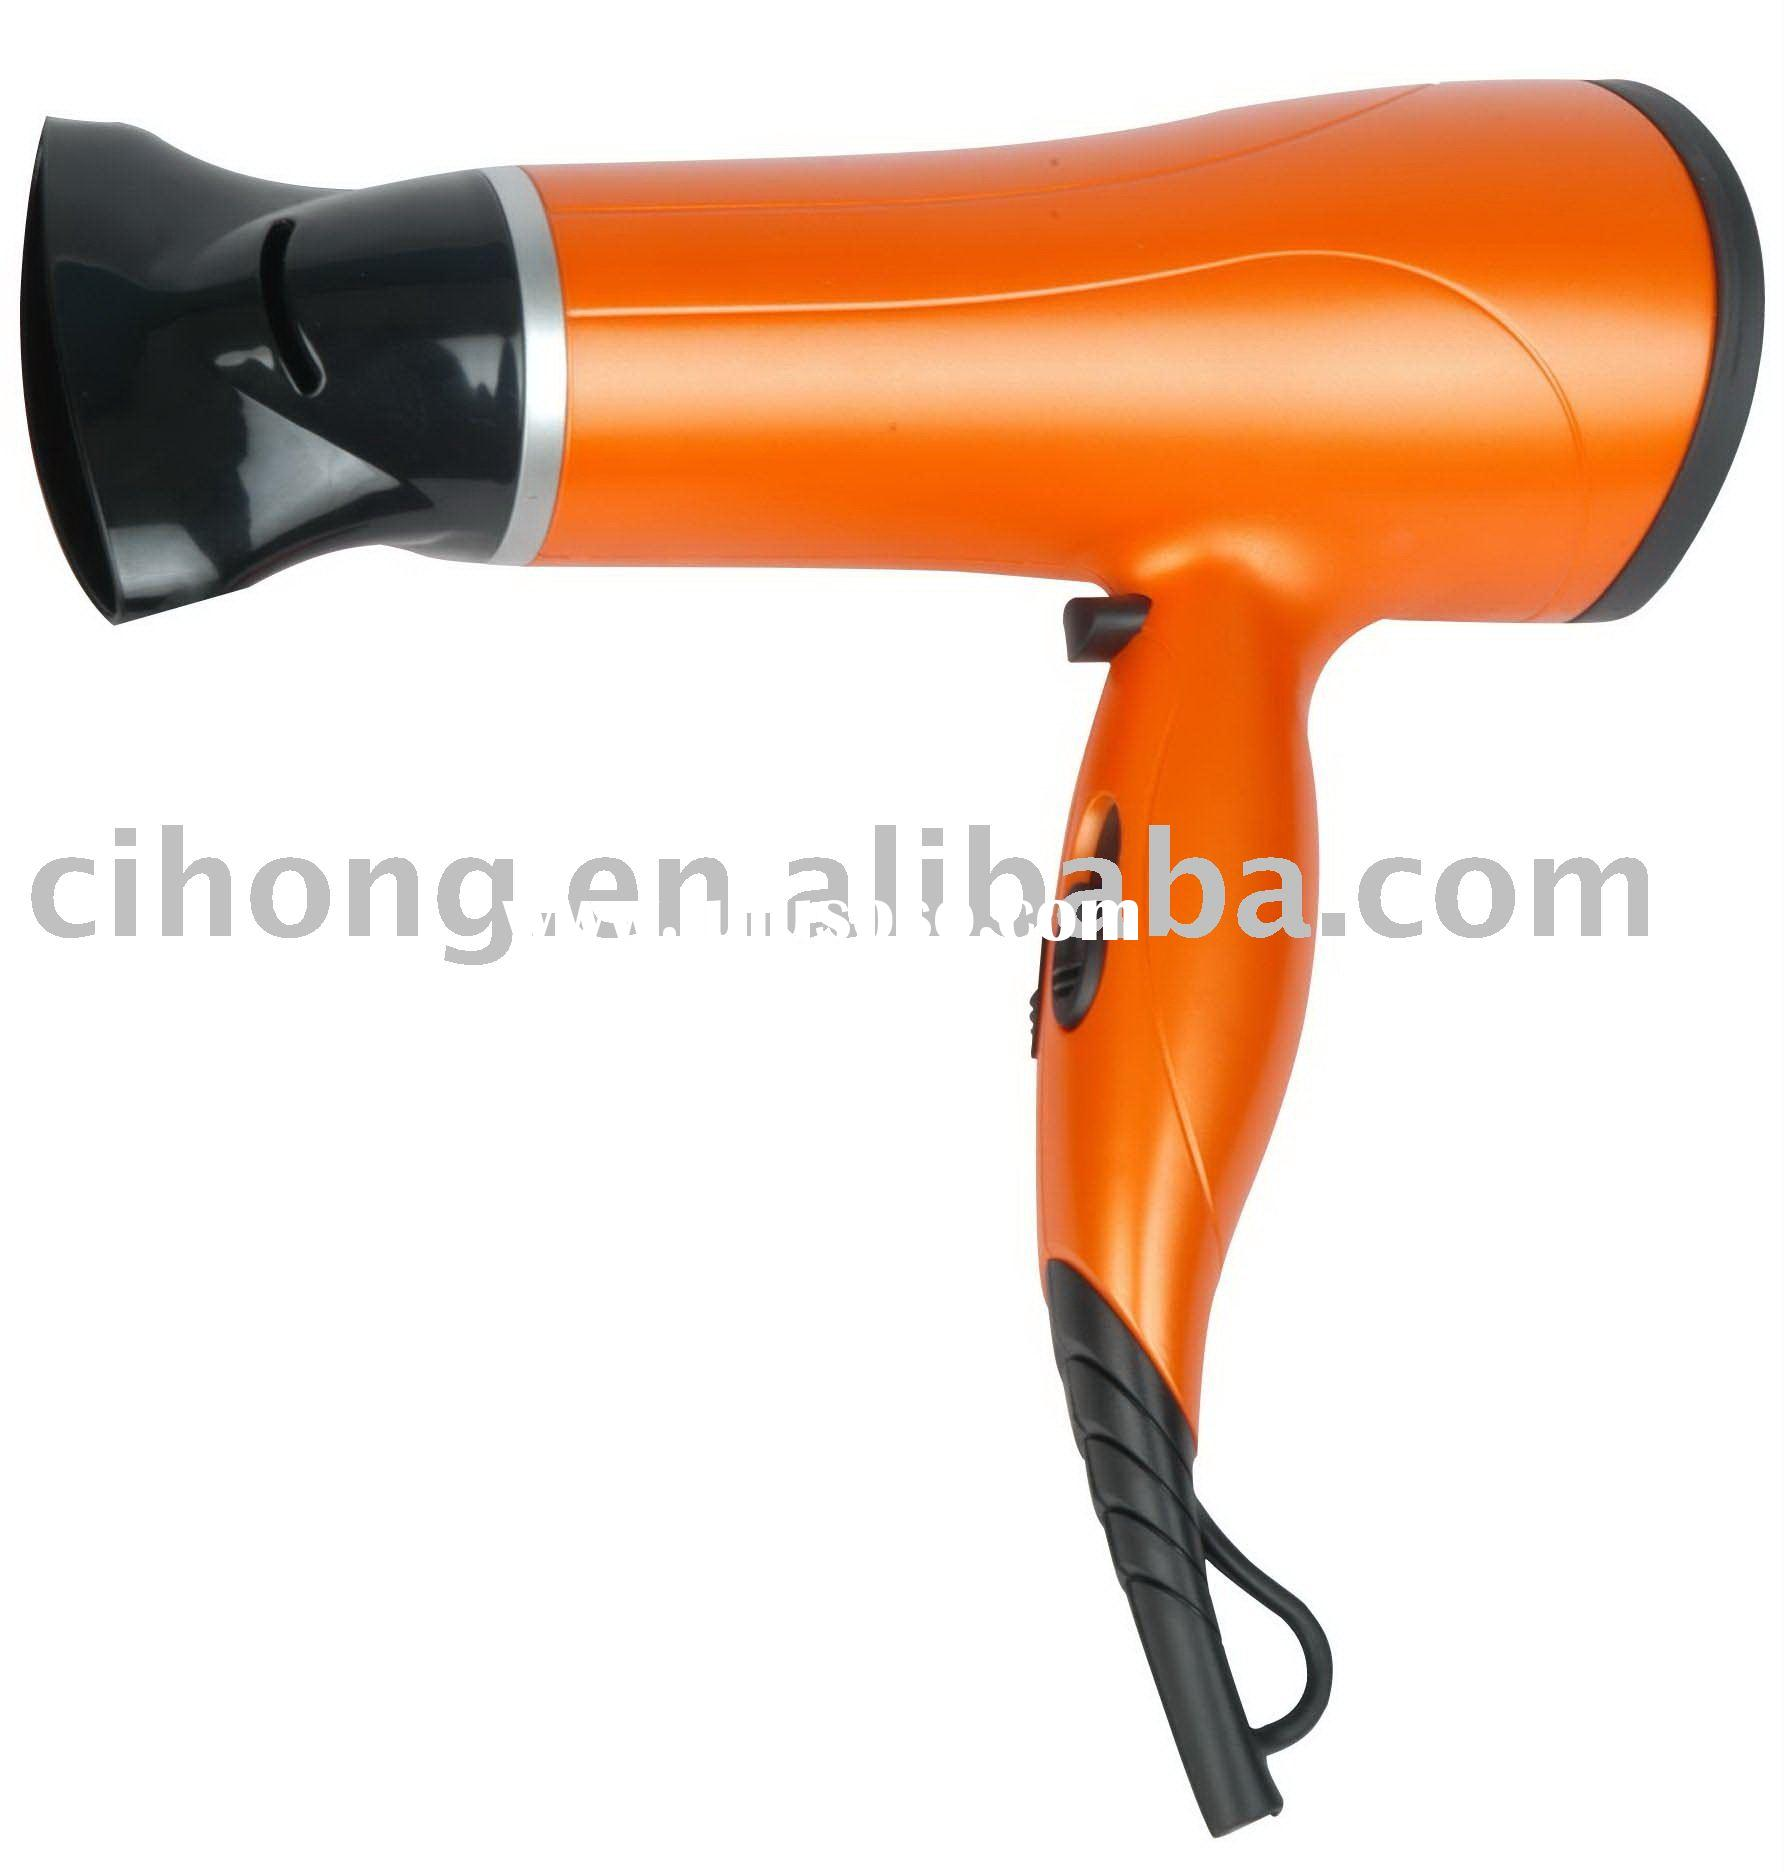 professional DC motor home new design hair dryer